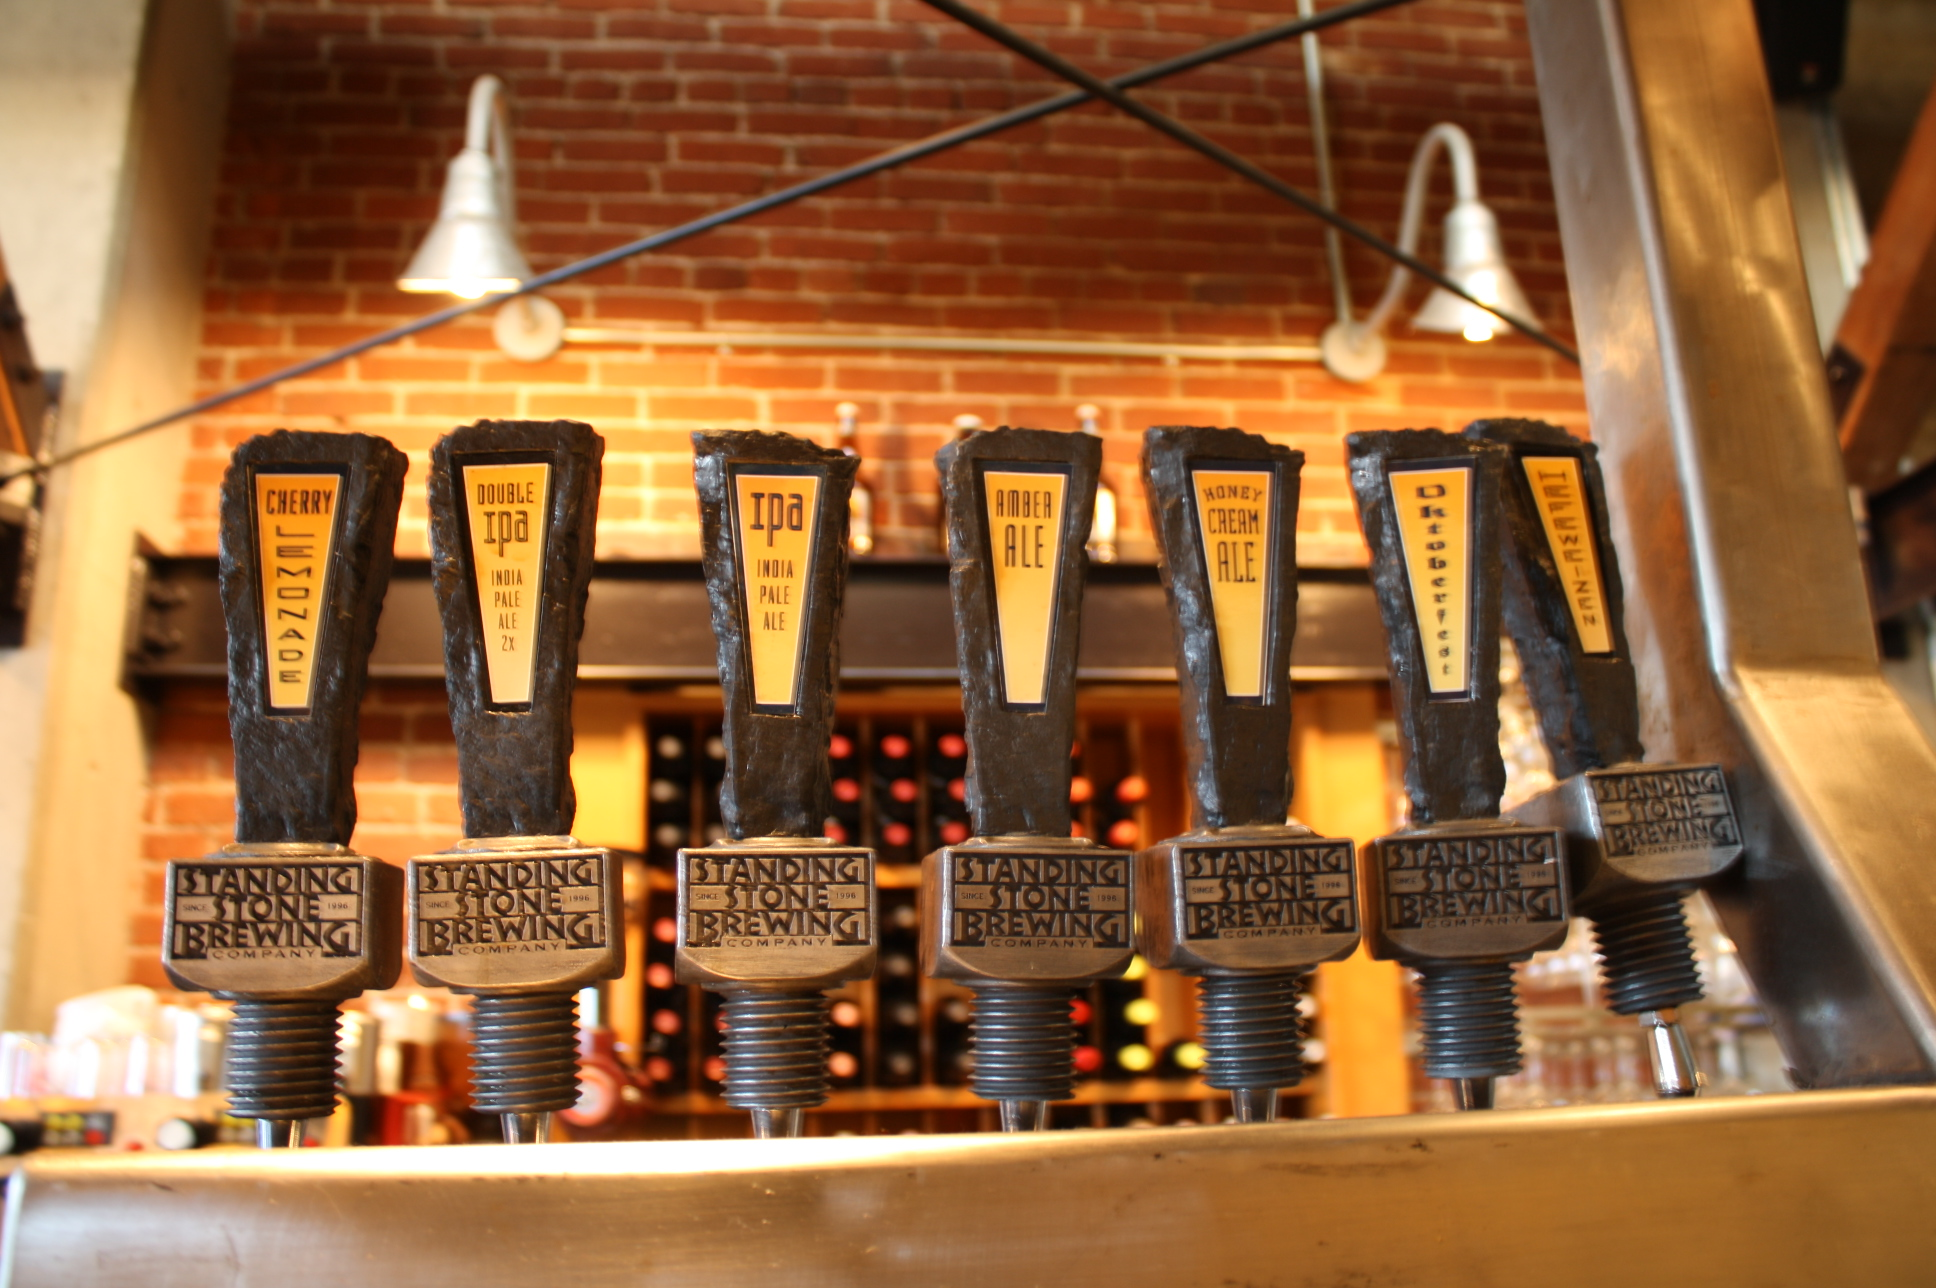 Standing Stone tap handles